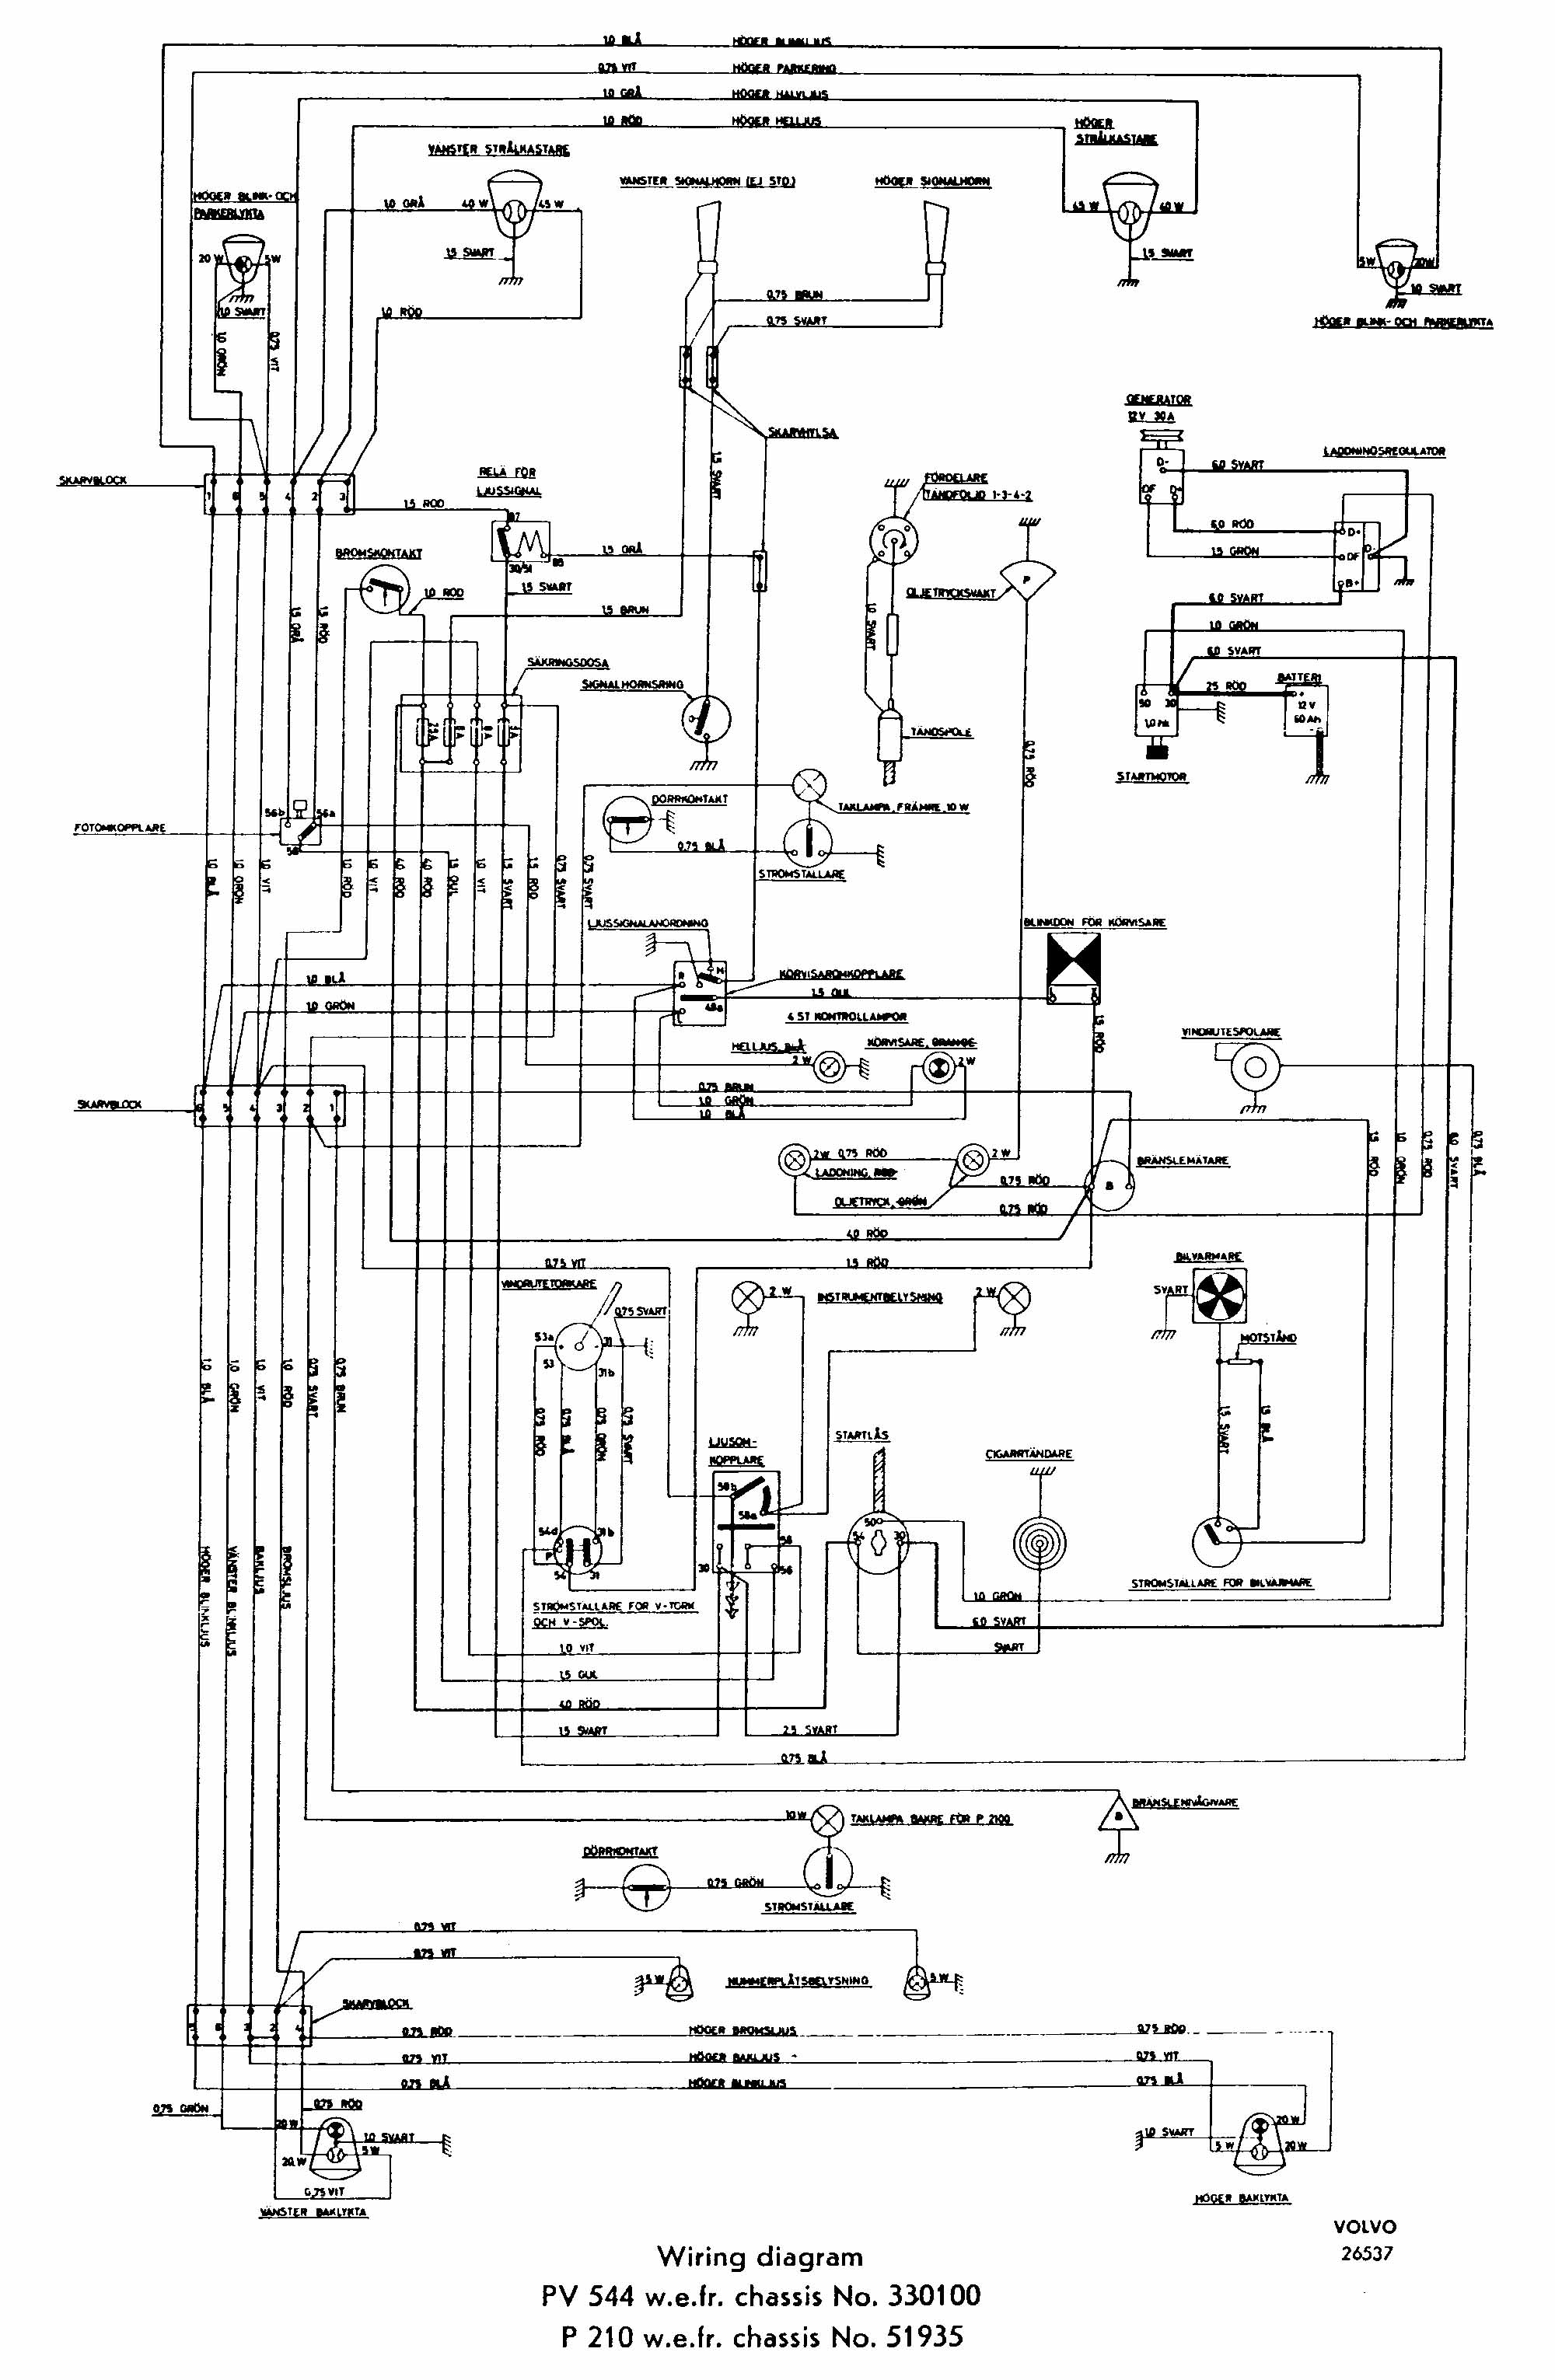 Single Speed Wiper Motor Wiring Diagram